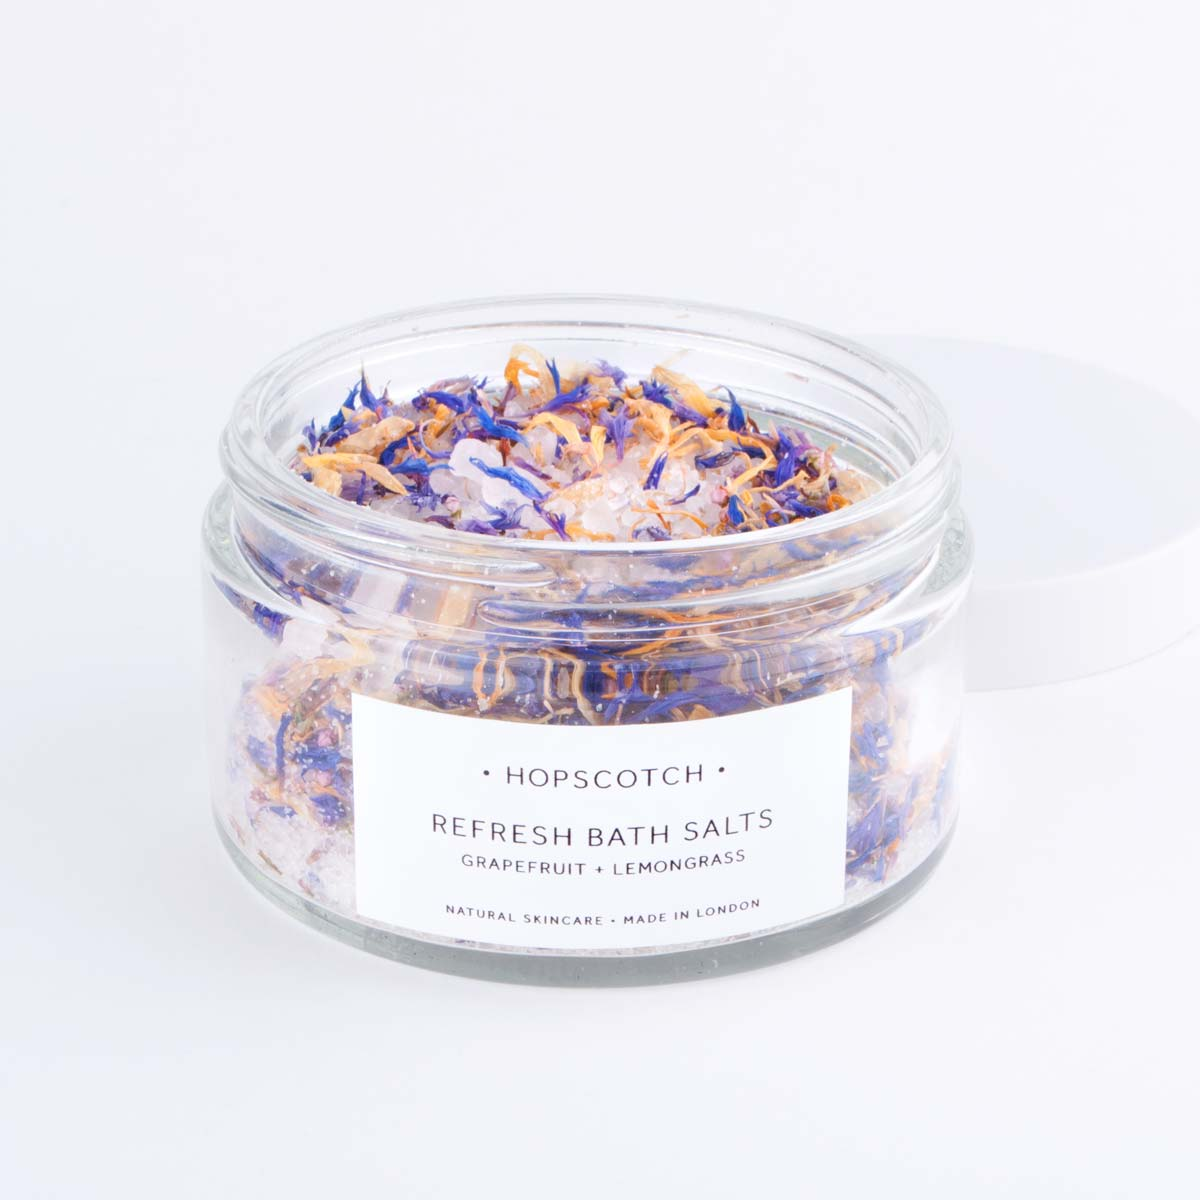 hopscotch refresh bath salts